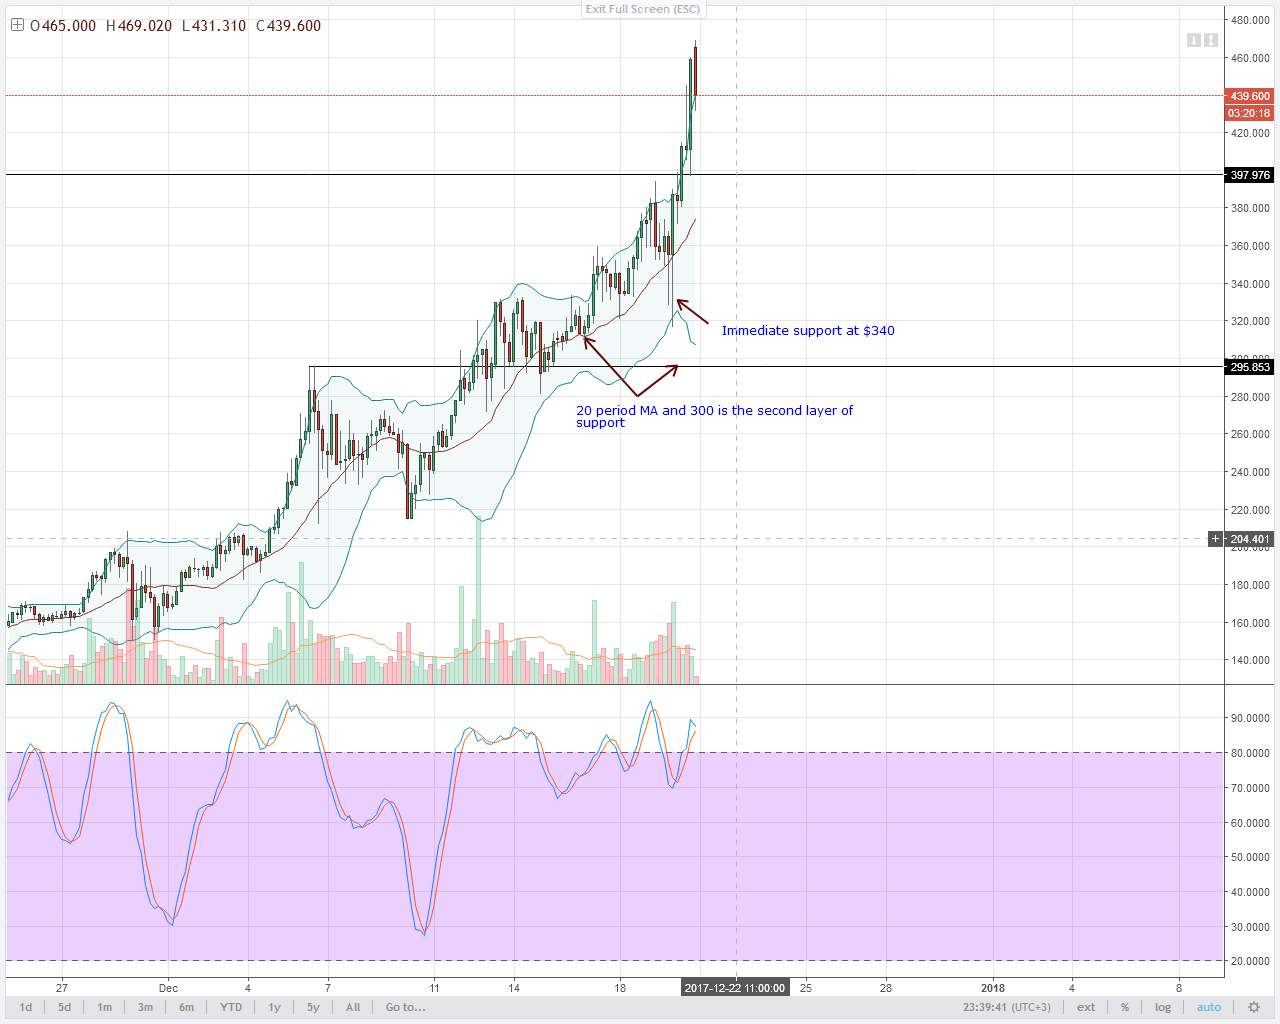 Monero Hodlers 4HR chart technical analysis